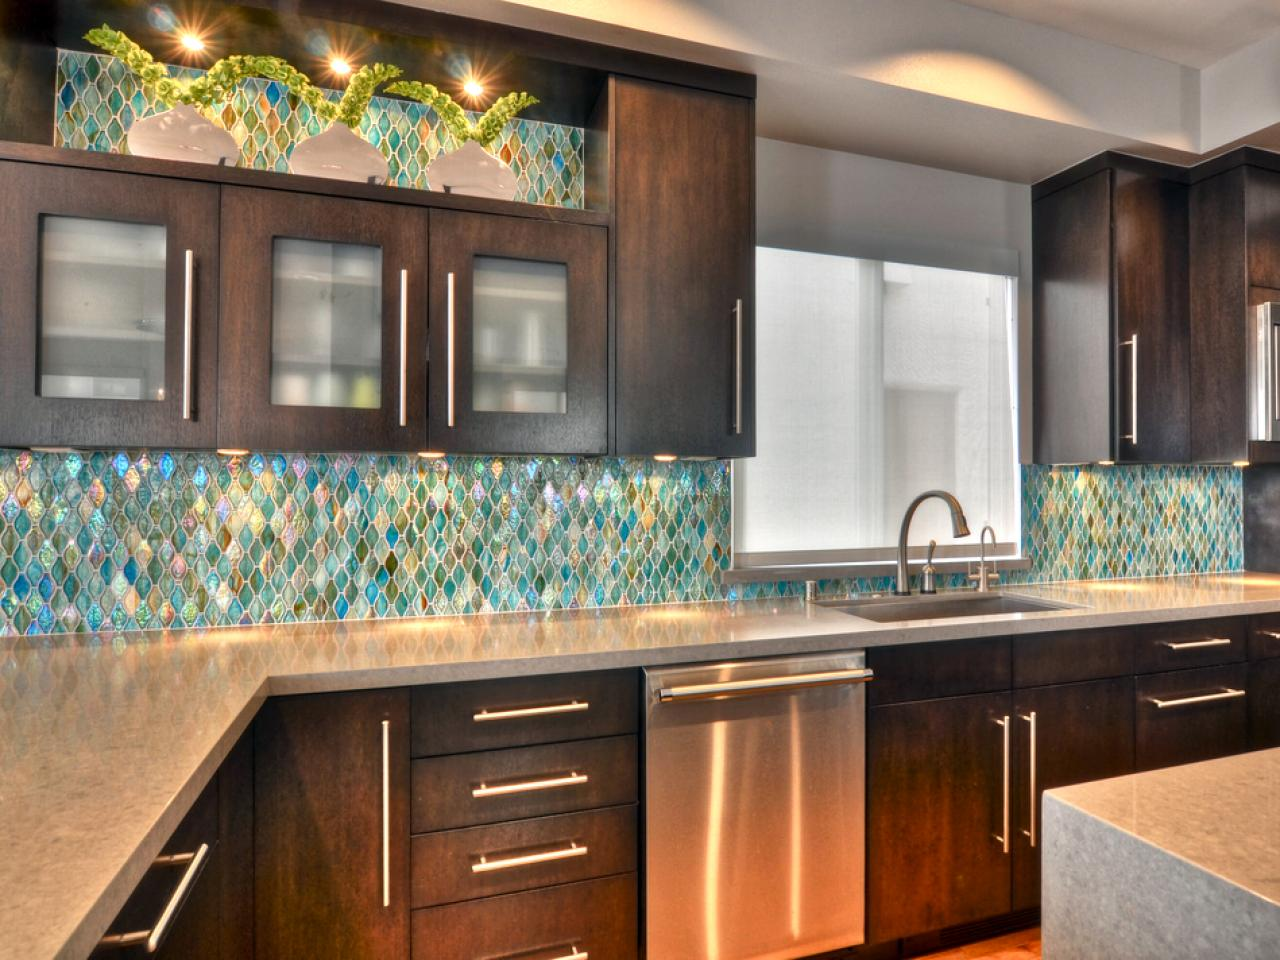 Gl Tile Kitchen Backsplash